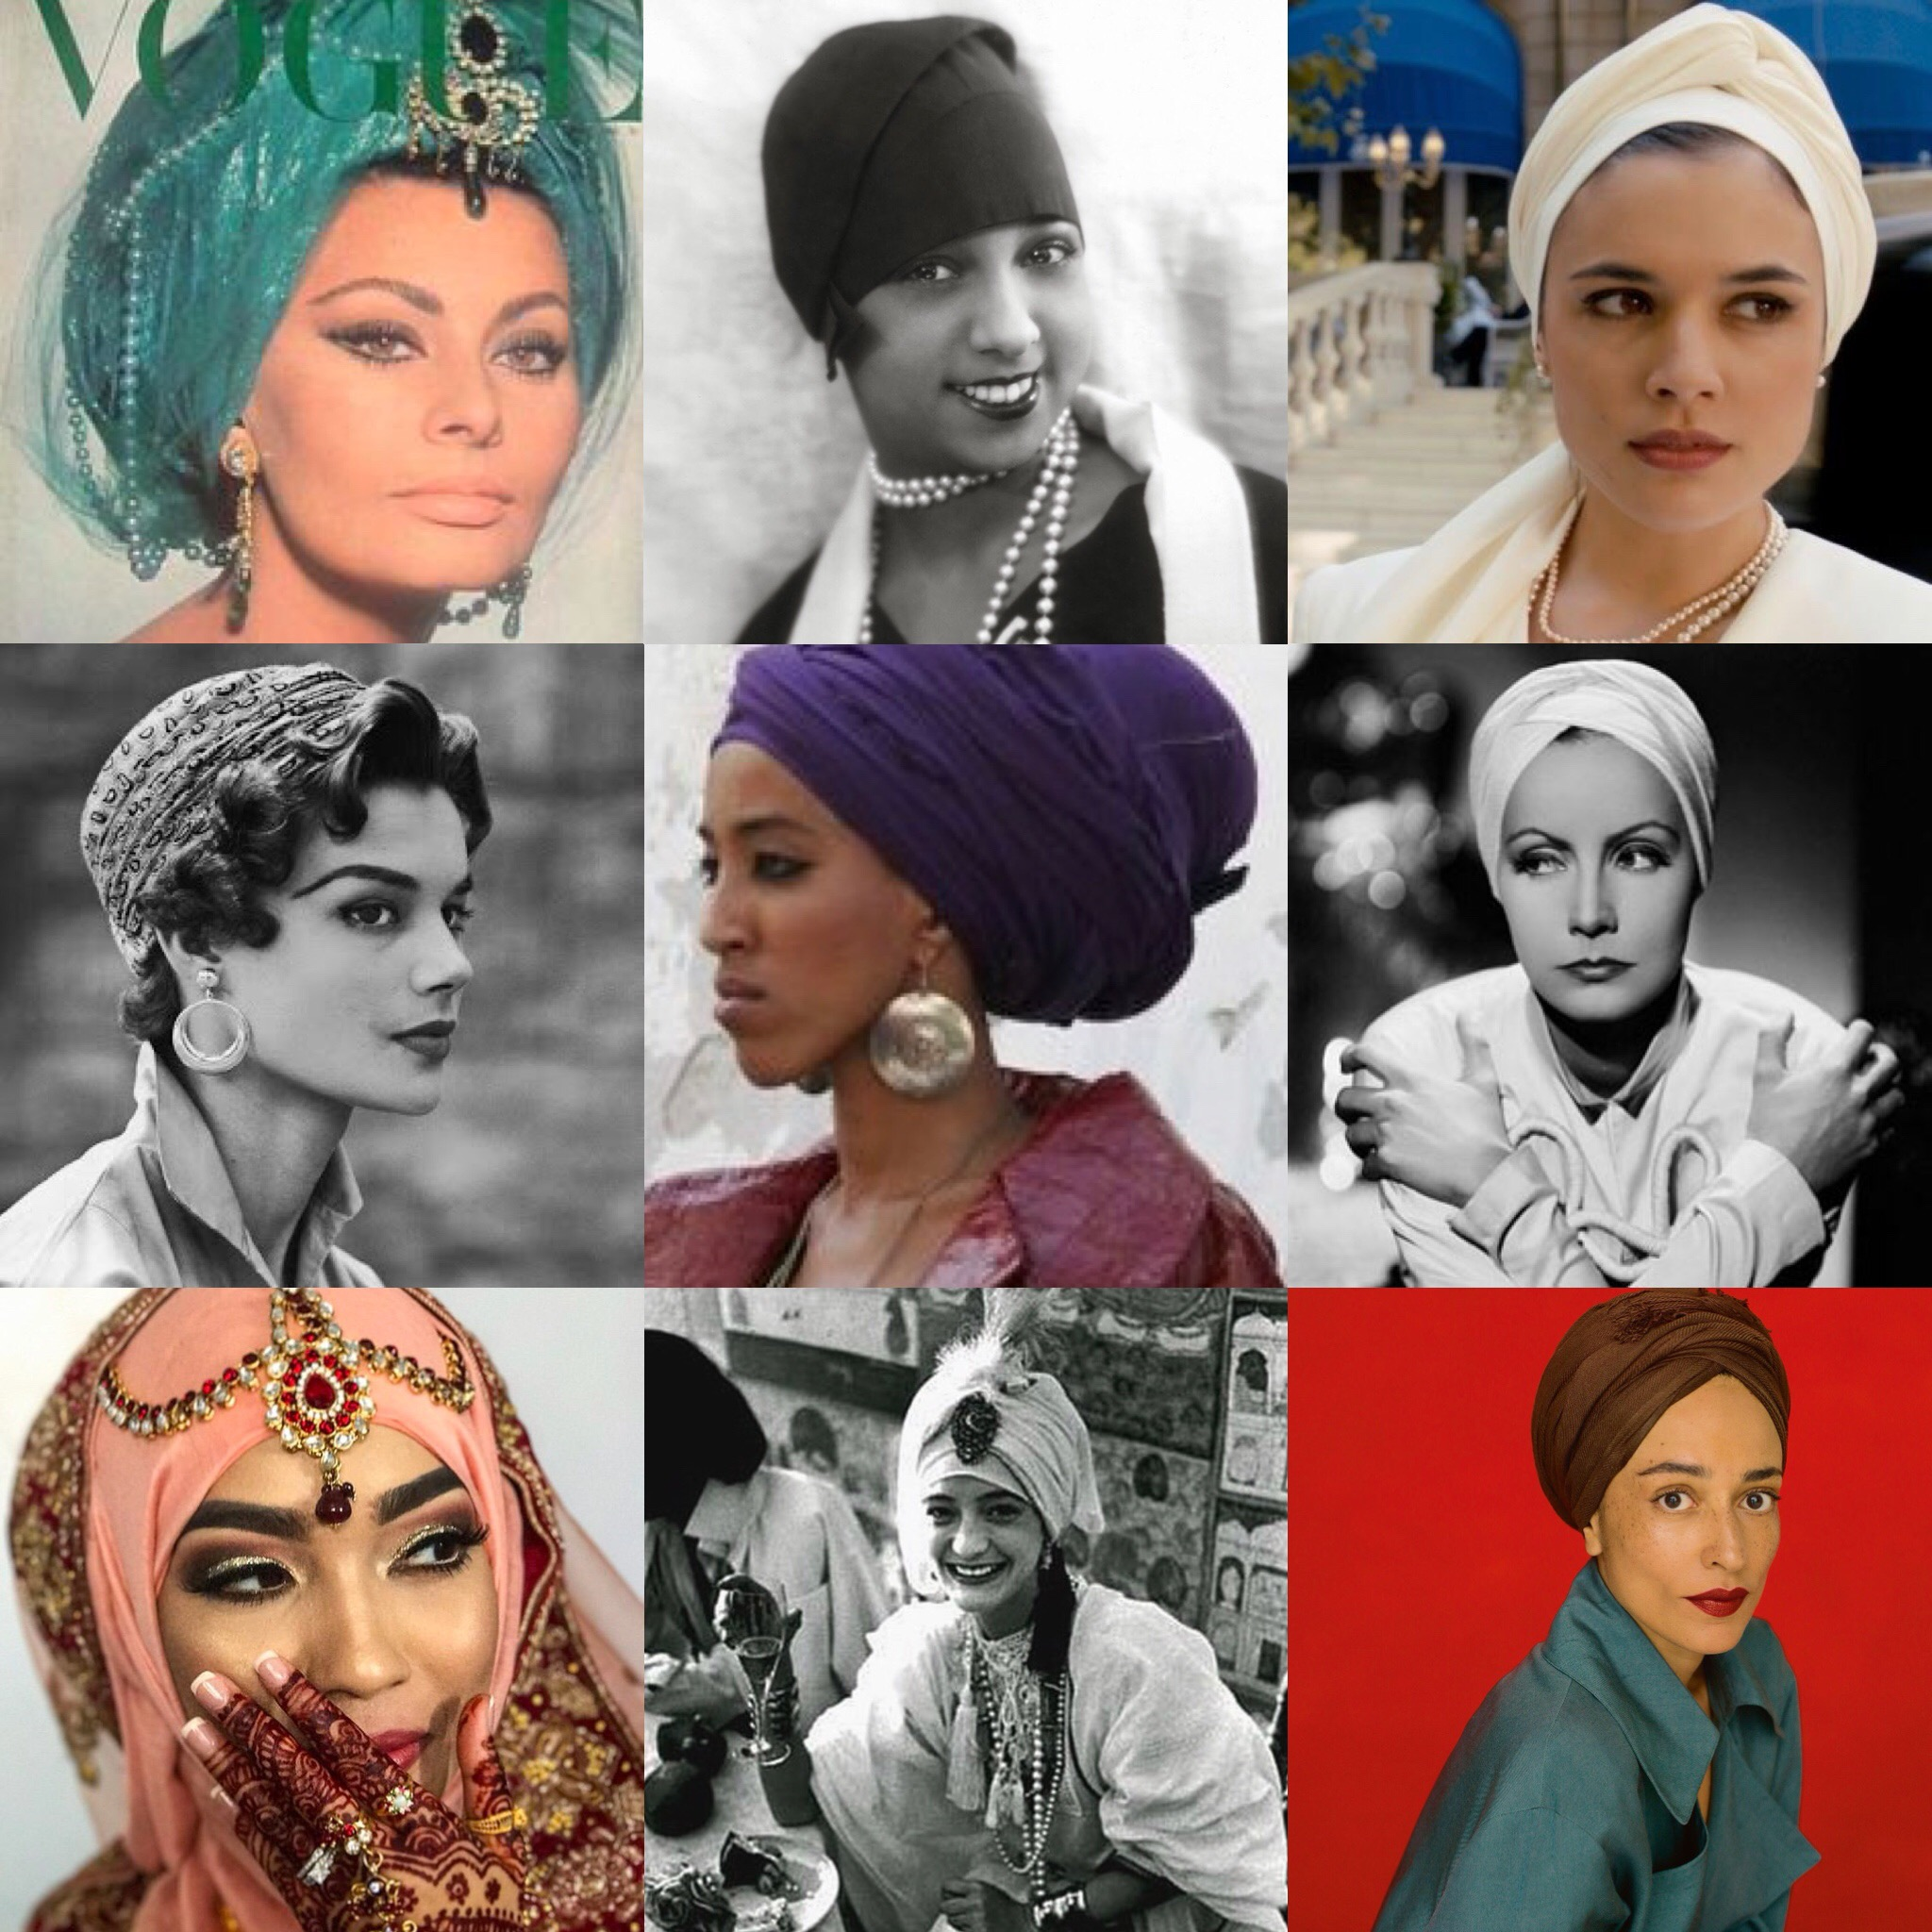 Women in Turbans